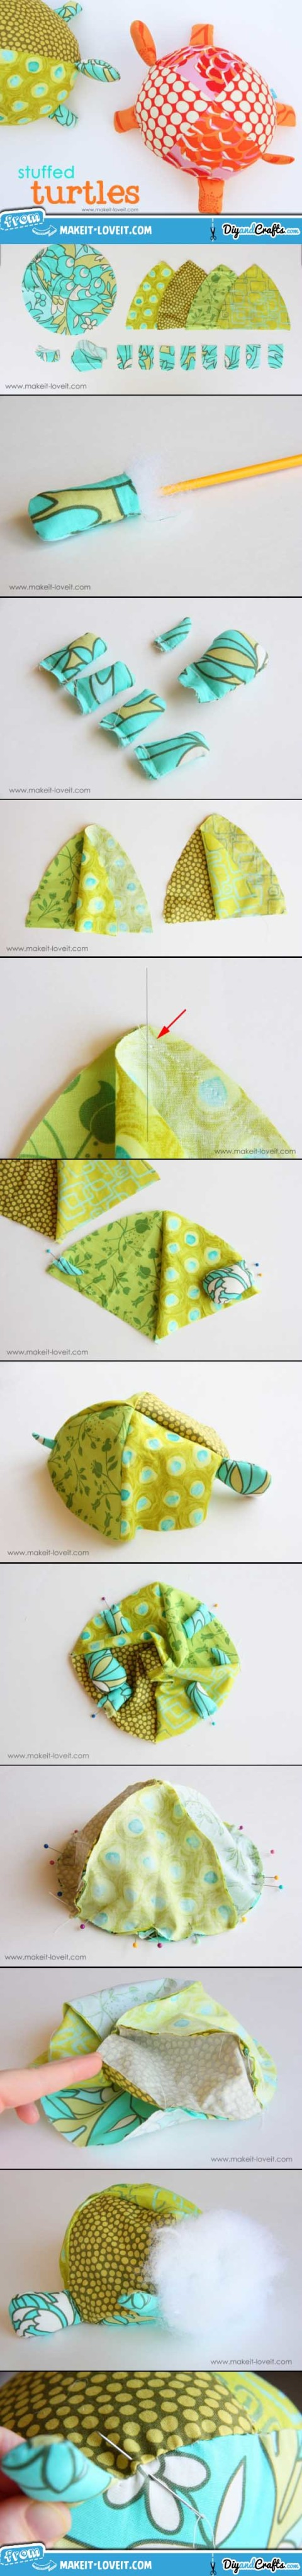 Stuffed Fabric Turtles (with pattern pieces) | DIY